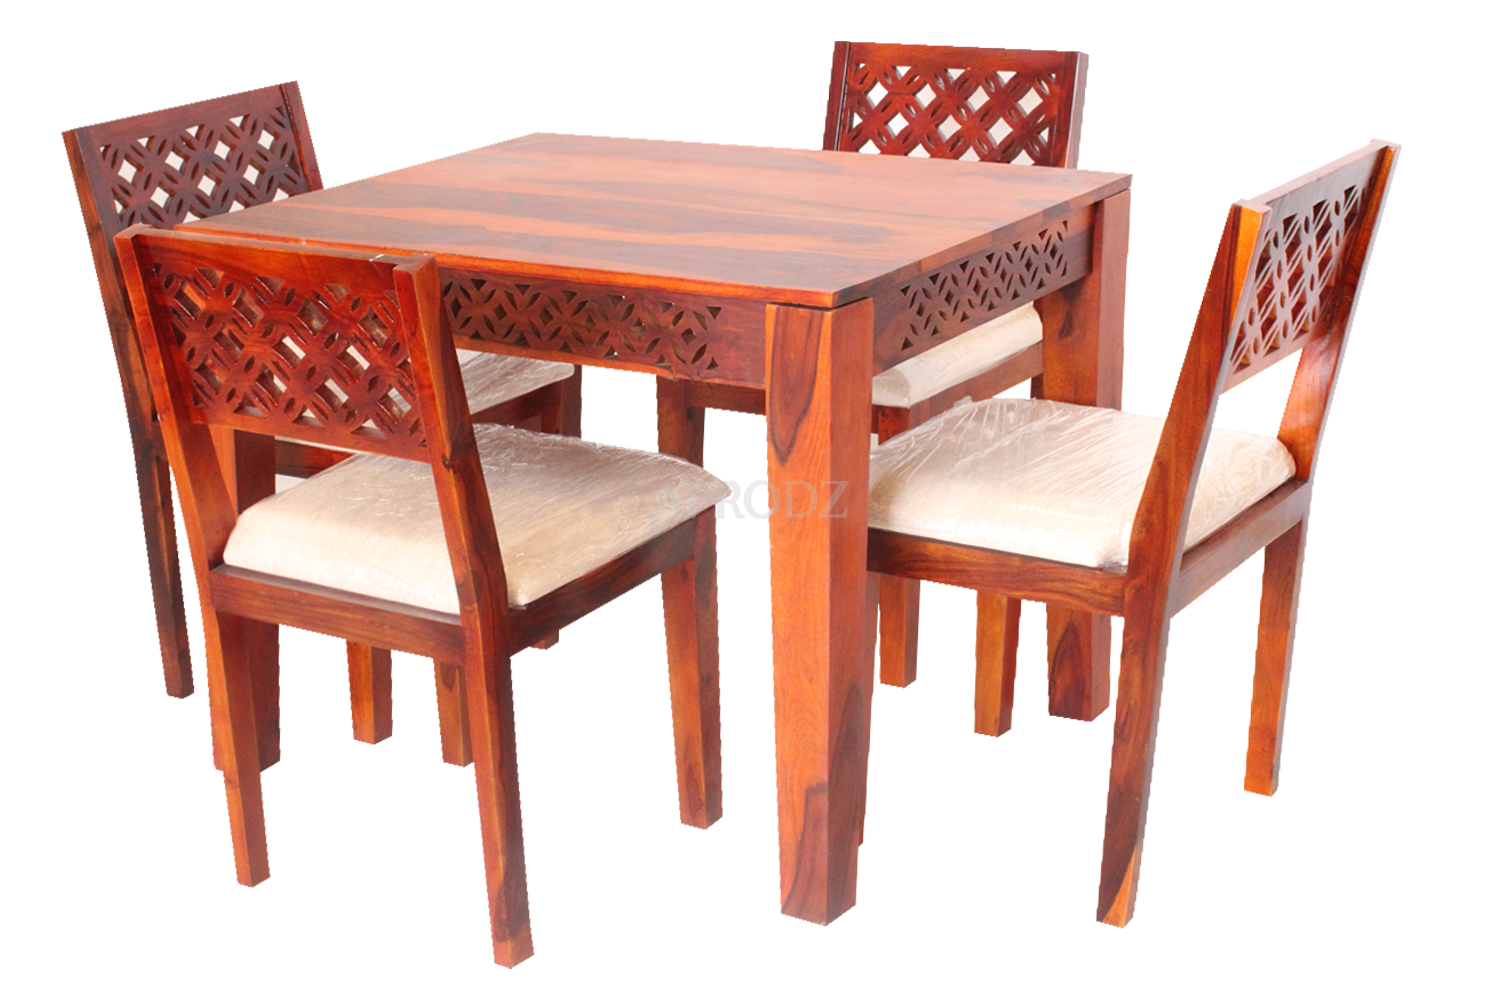 Durque 4 Seater Dining Table Set For Home Dining Furniture Aprodz